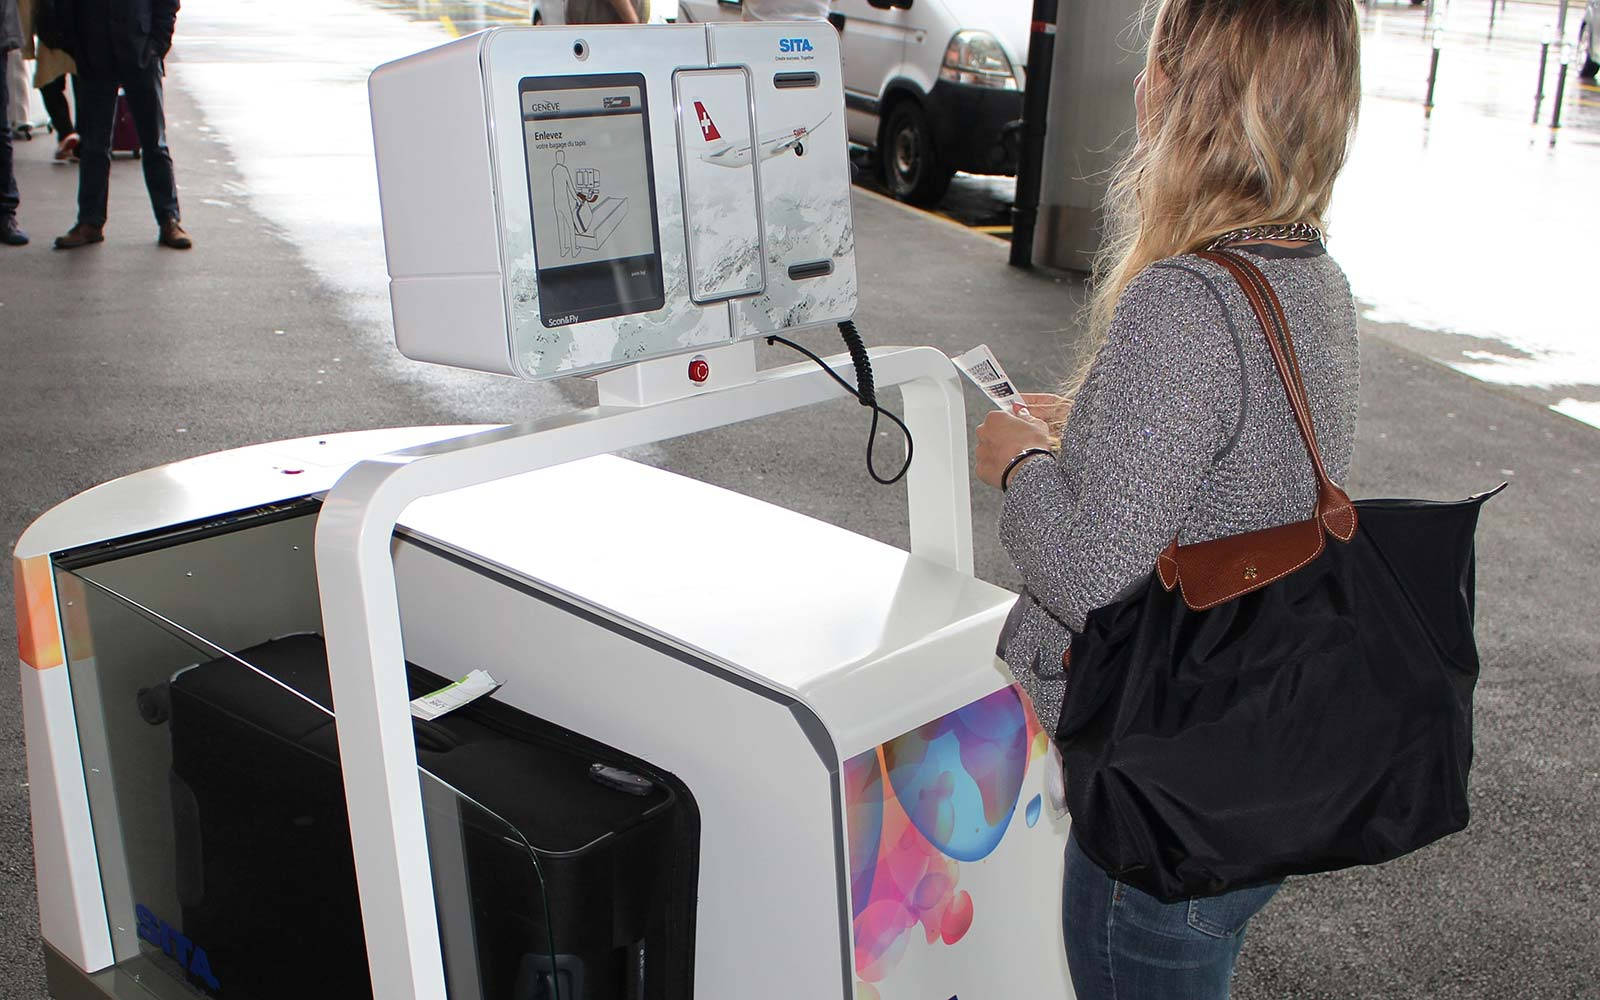 This airport robot will take your bags at the curb, check you in and send you on your way